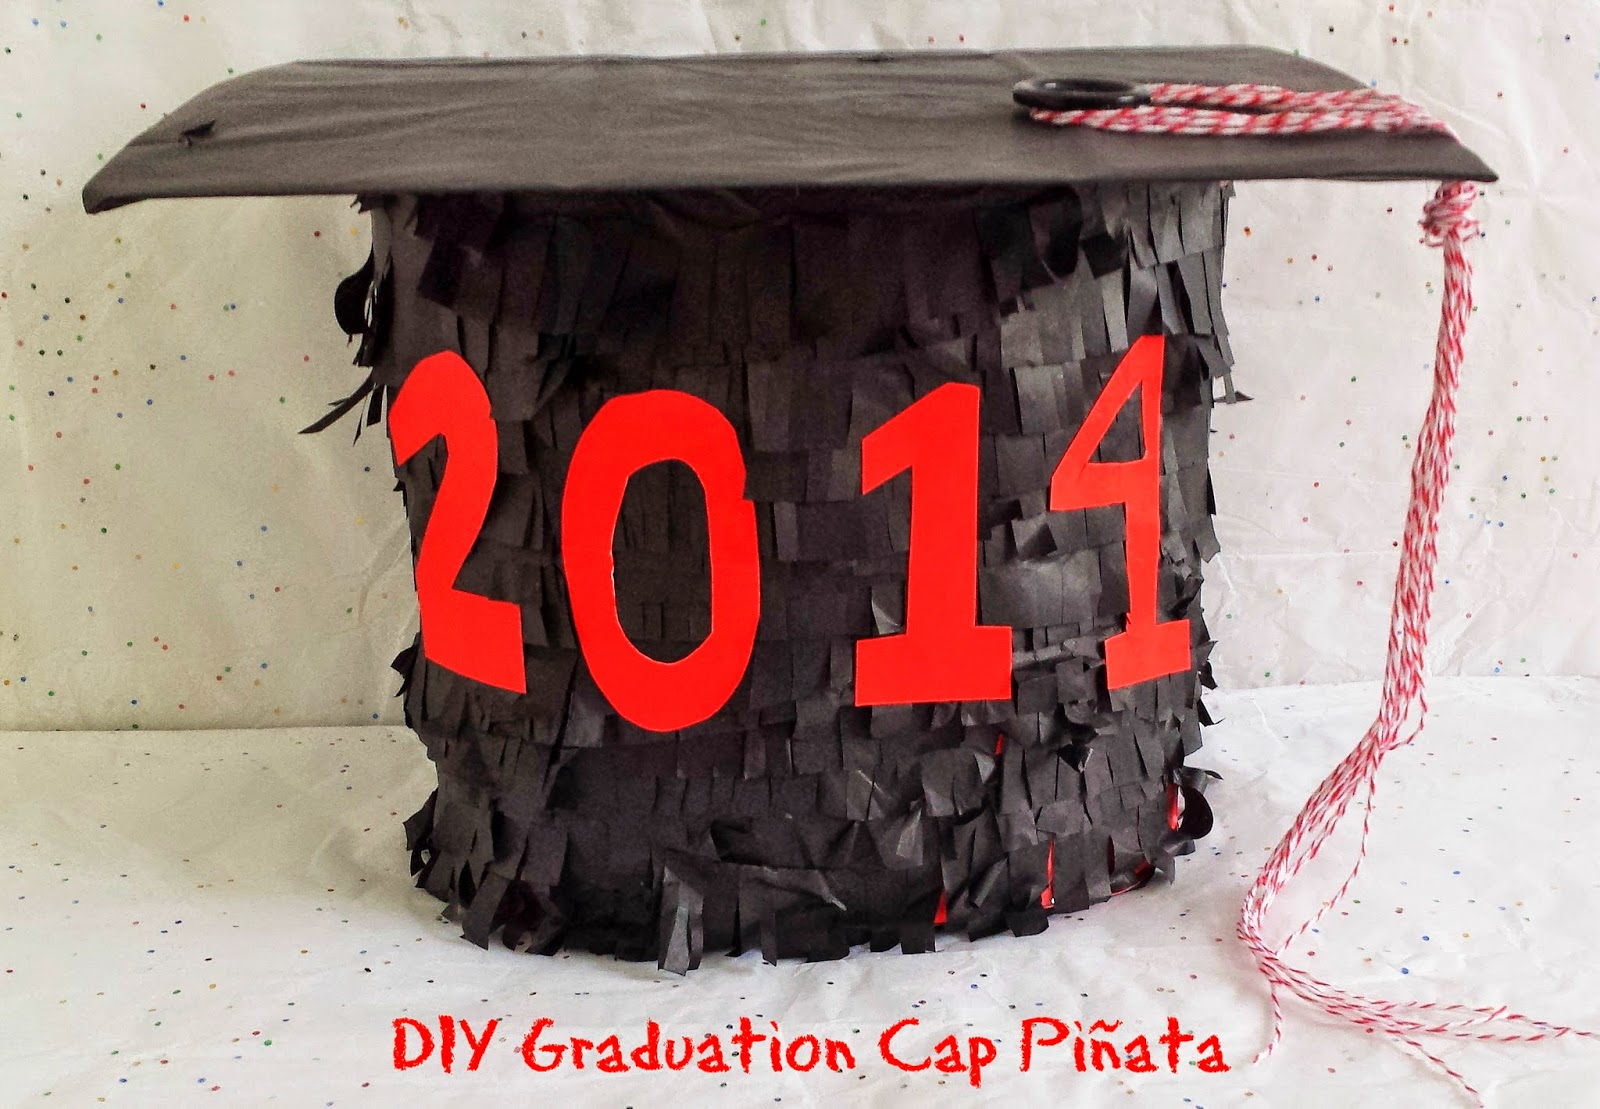 http://b-is4.blogspot.com/2014/05/brodys-diy-graduation-cap-pinata.html